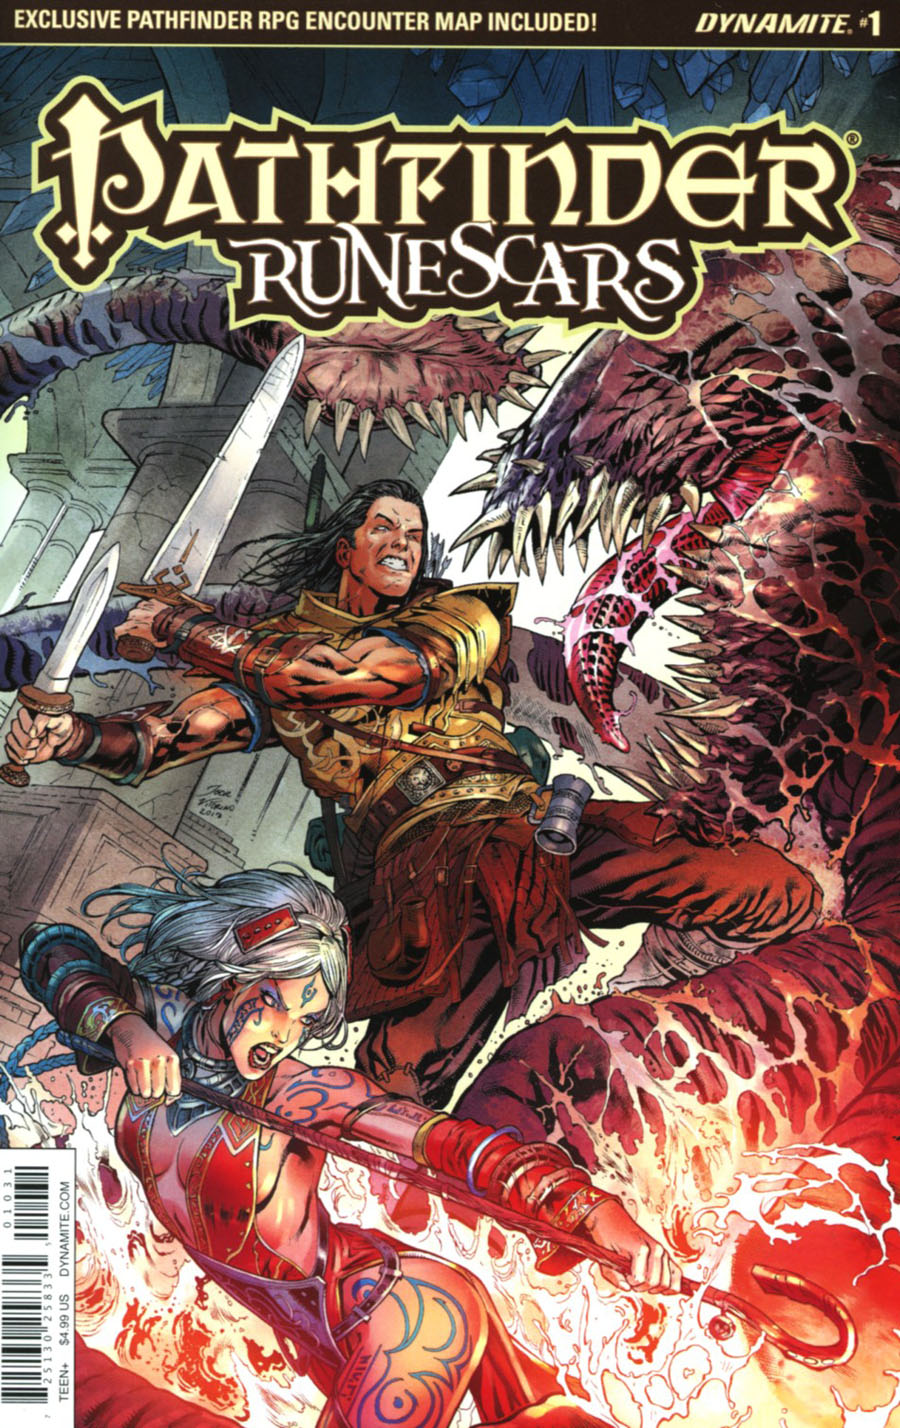 Pathfinder Runescars #1 Cover C Variant Igor Lima Cover